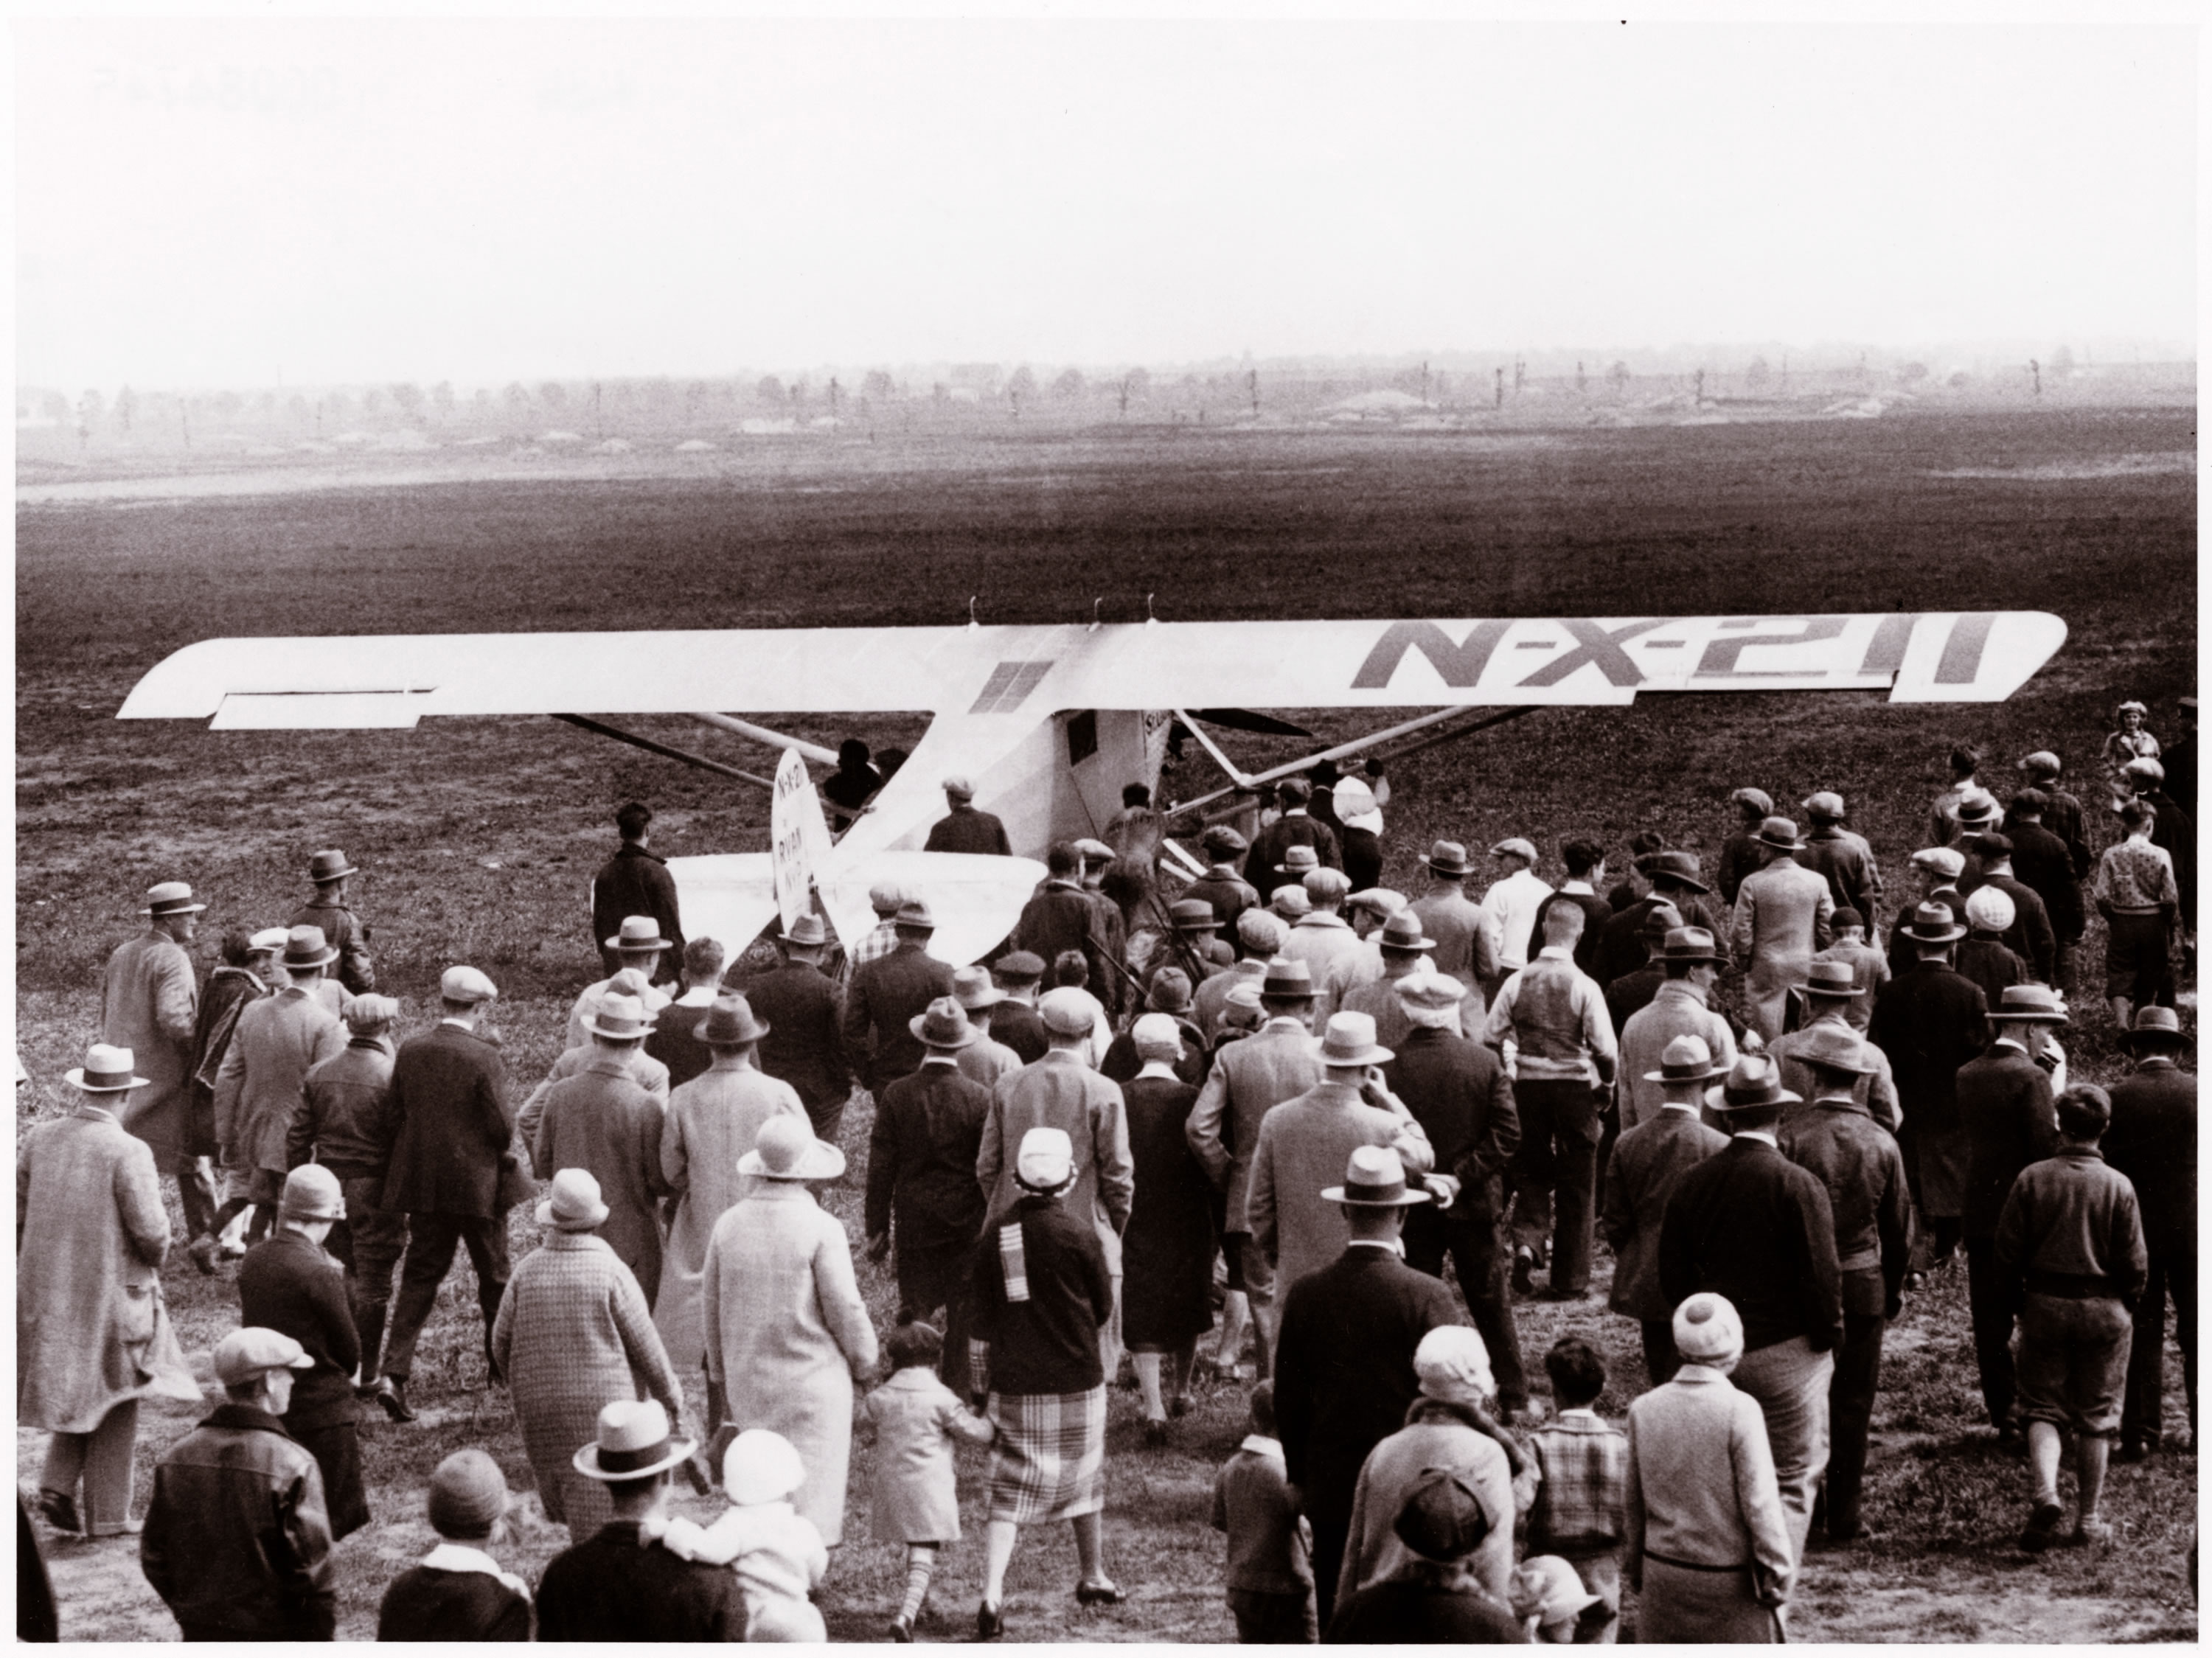 Sprit of Stl. Louis, piloted by Charles Lindbergh at Roosevelt Airfield, Long Island NY, May 20, 1927